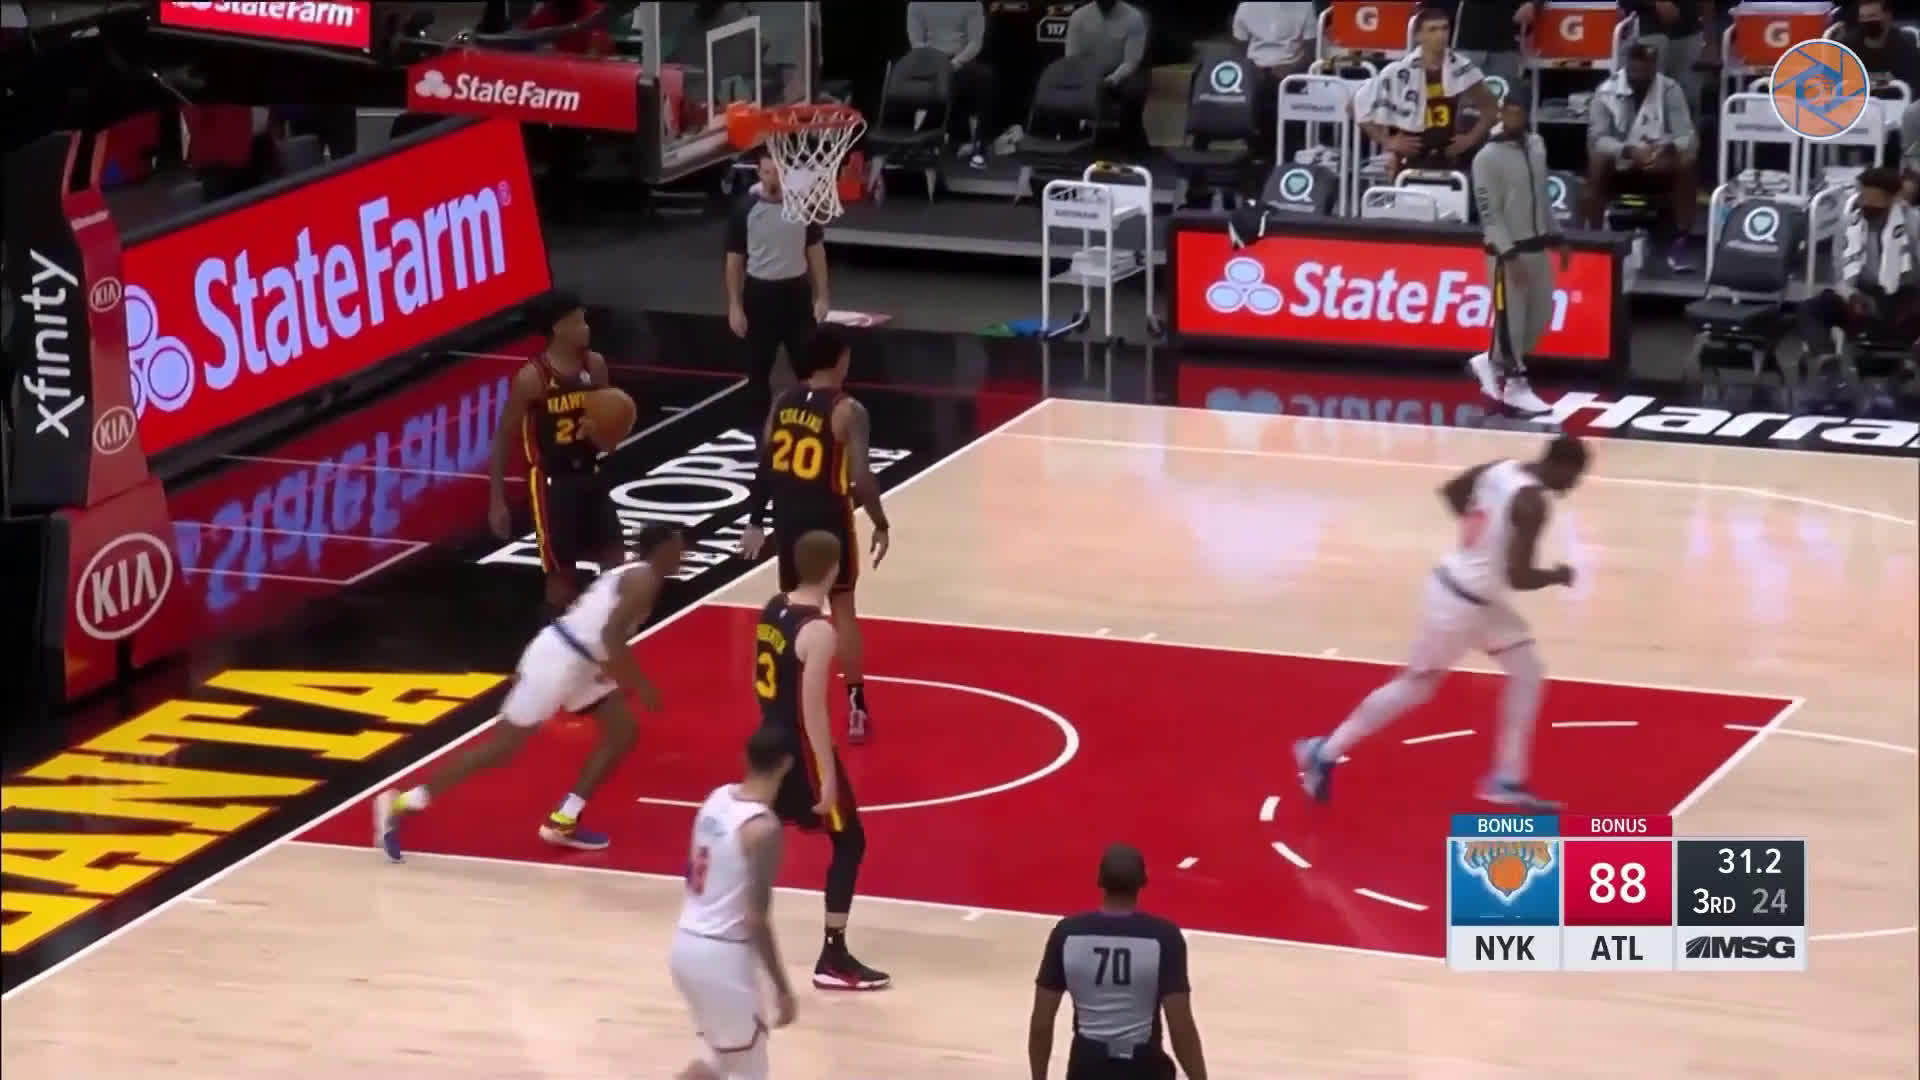 [Highlight] Immanuel Quickley dekes two Hawks defenders for the easy dunk